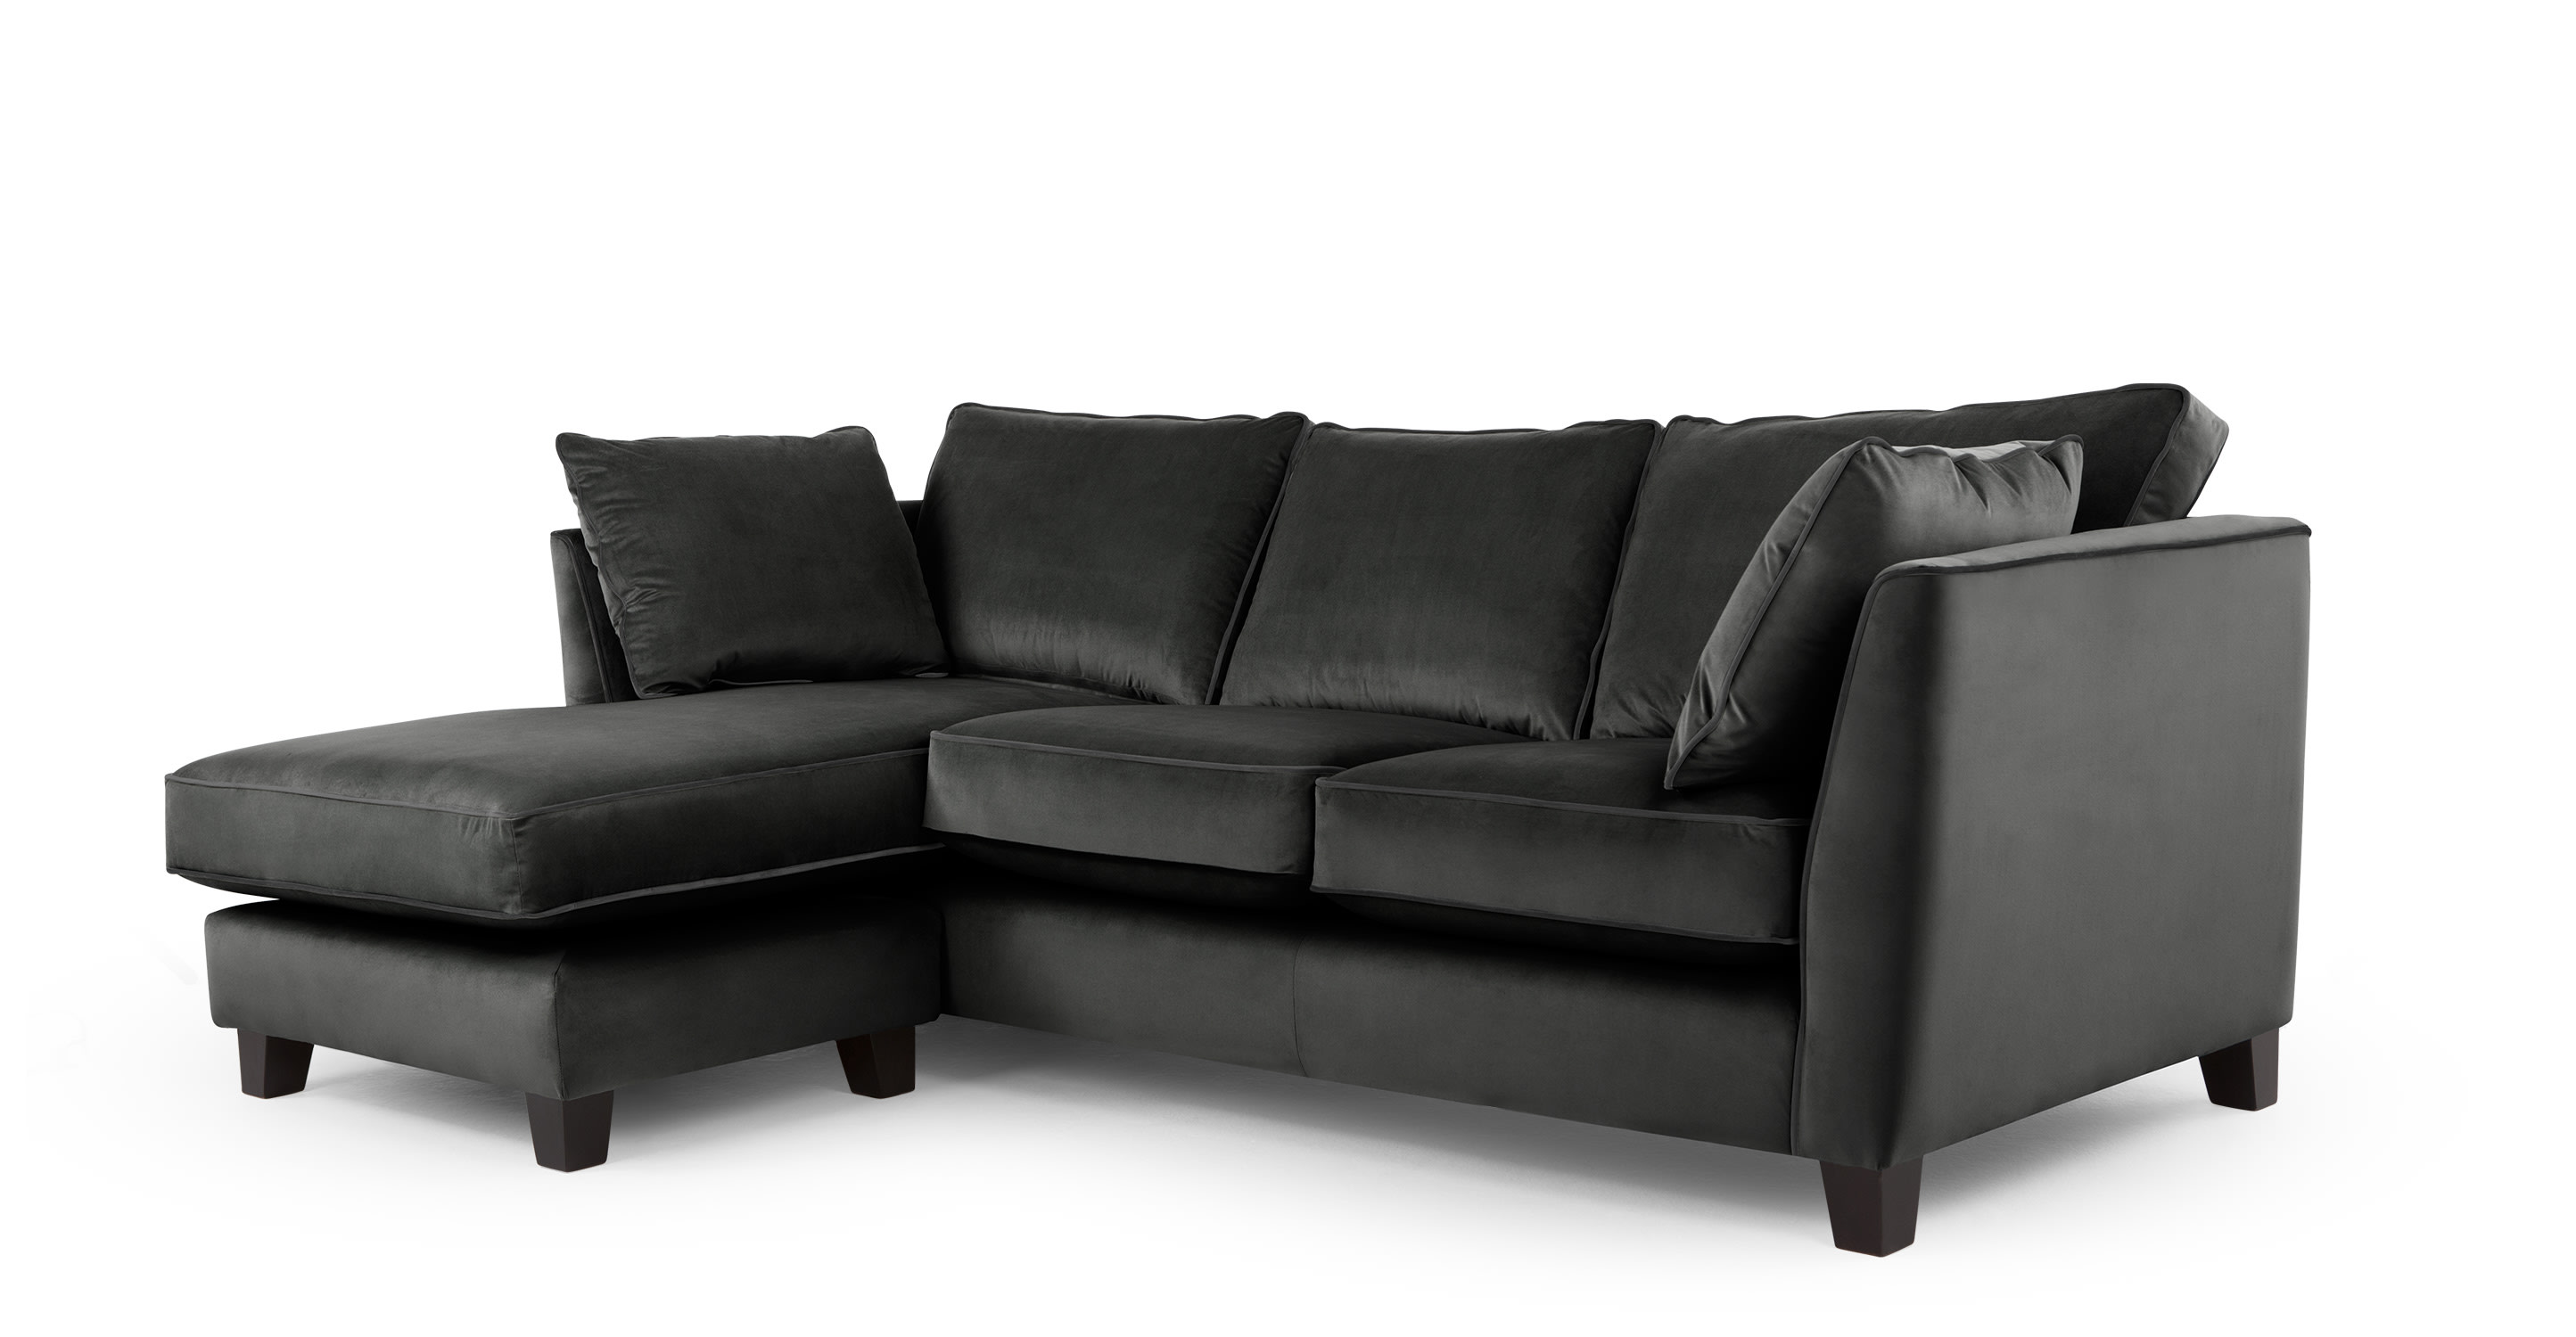 wolseley gro es ecksofa rauchgrauer samt. Black Bedroom Furniture Sets. Home Design Ideas